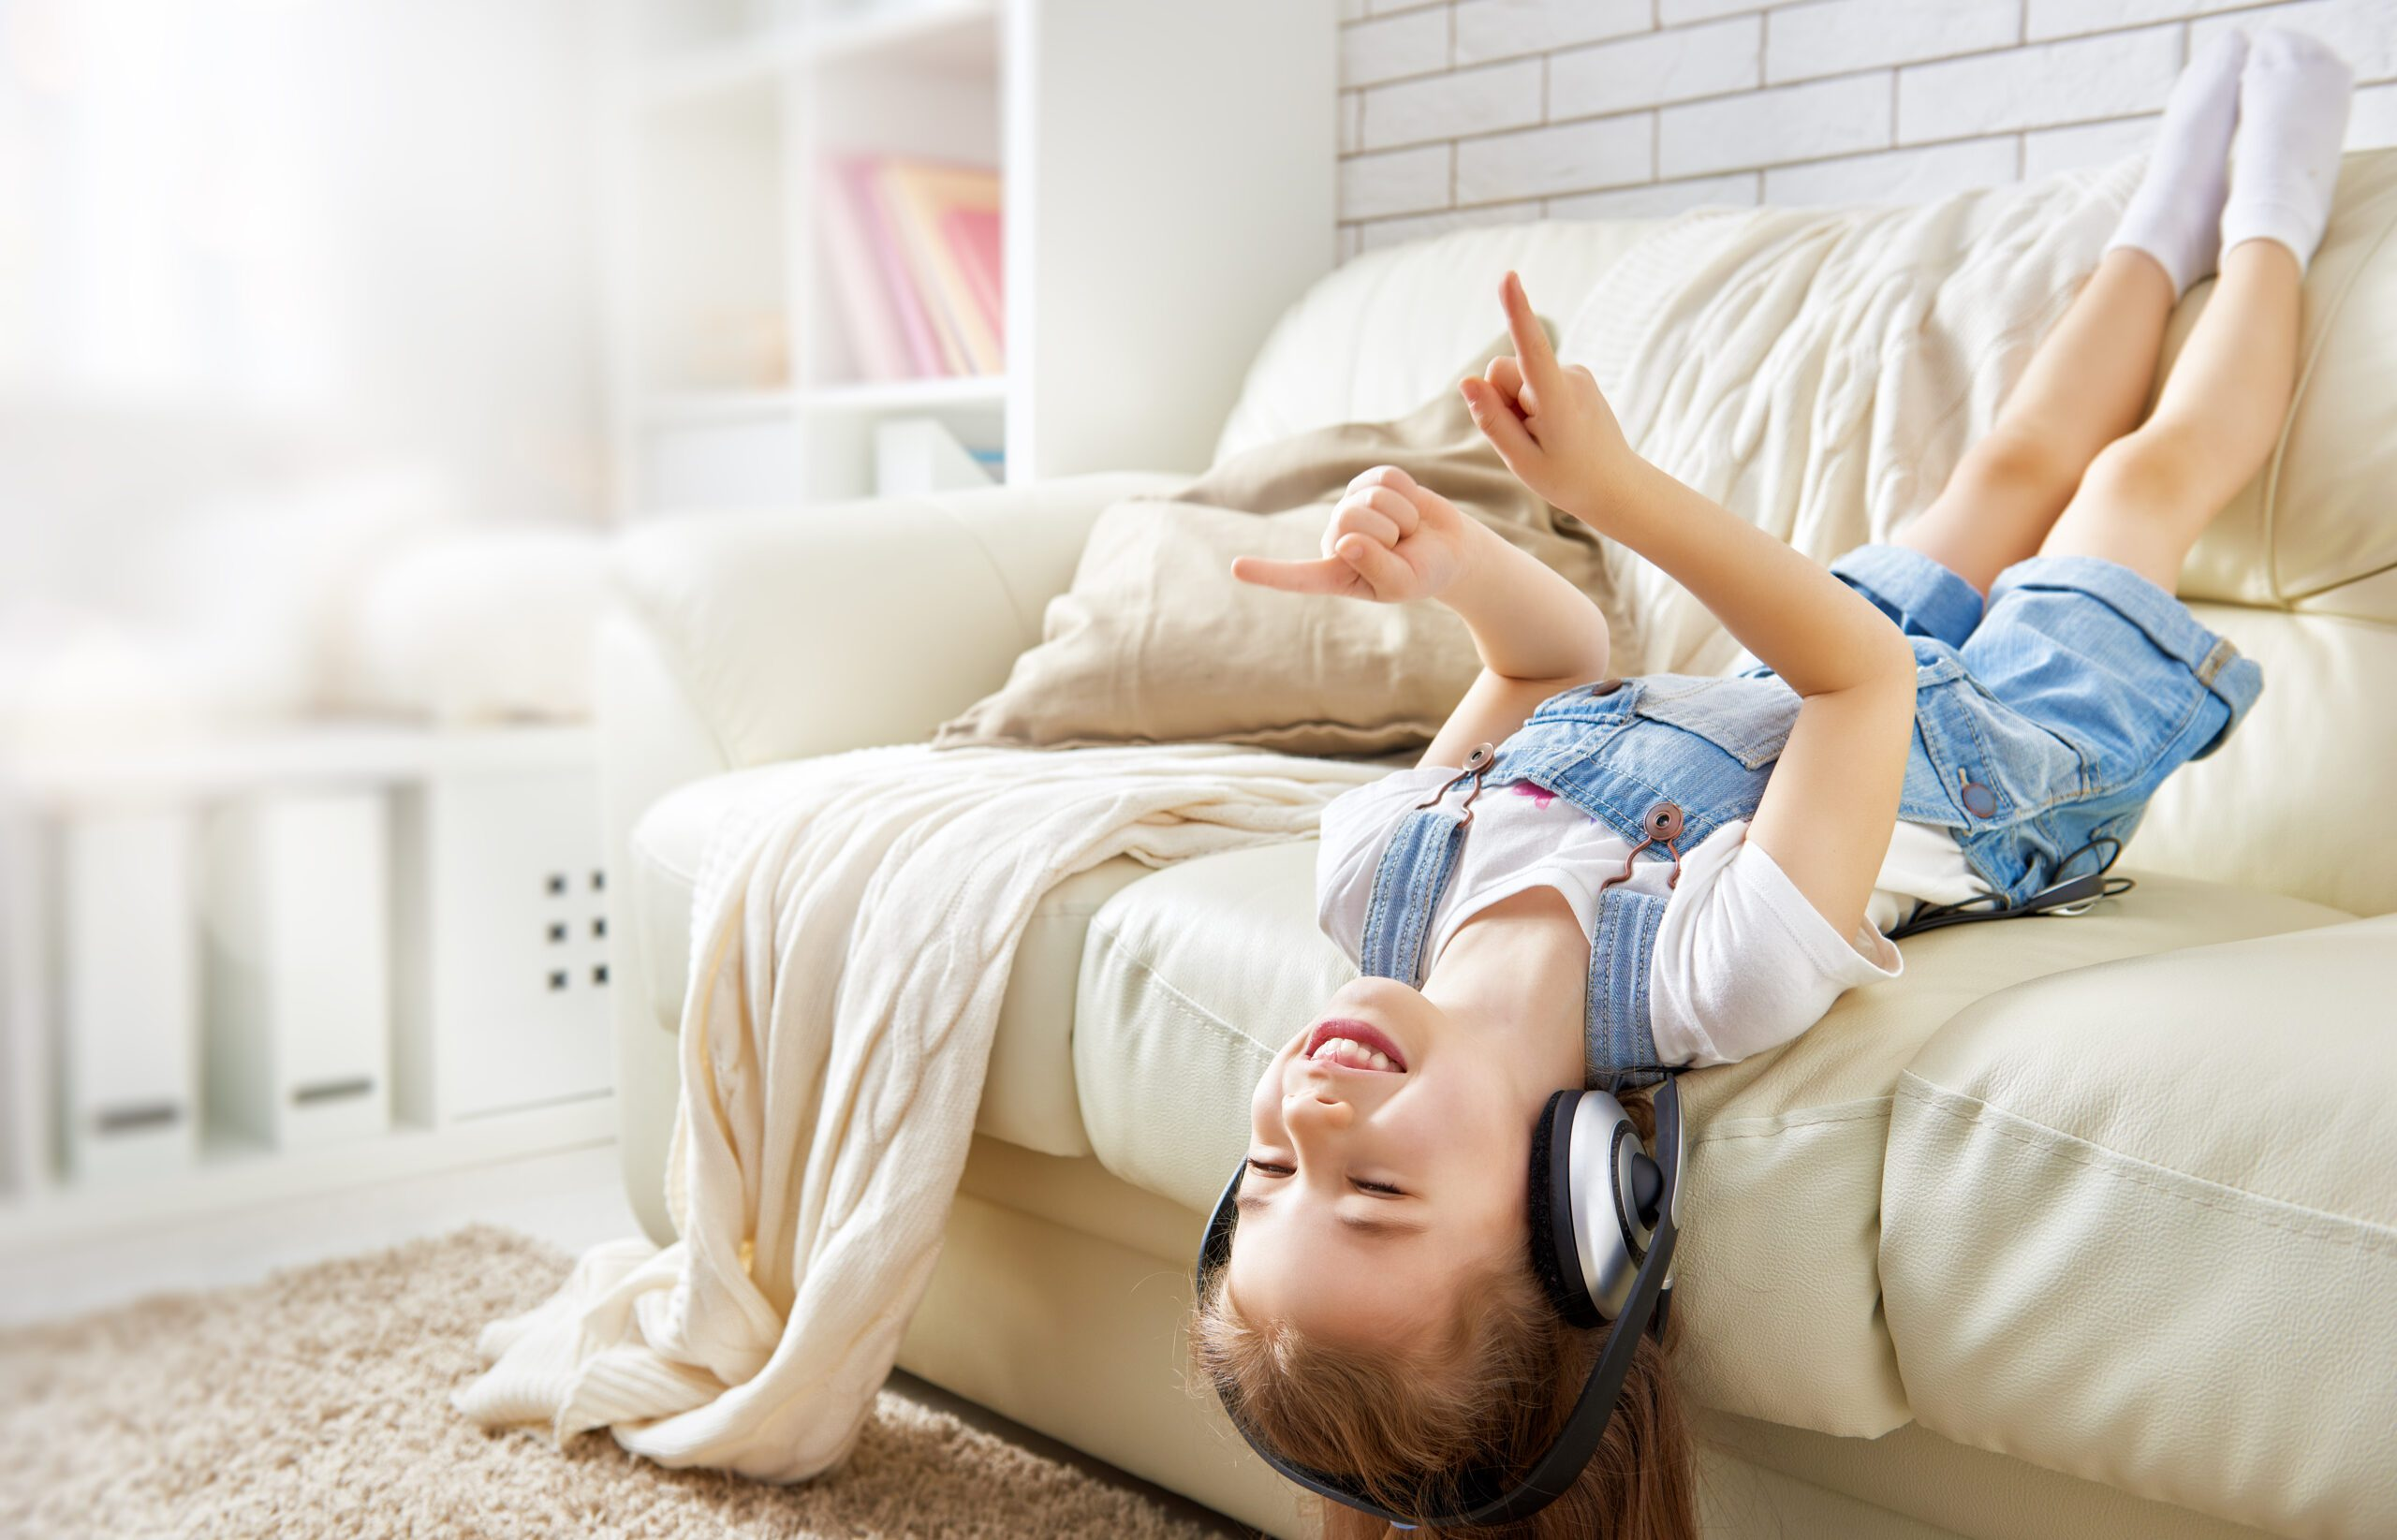 Musical benefits for kids include developing cognitive & motor skills. Find out more & get 5 Family Playlists with 10+ Hours of Music #childdevelopment #parenting #parentingtips #musictherapy